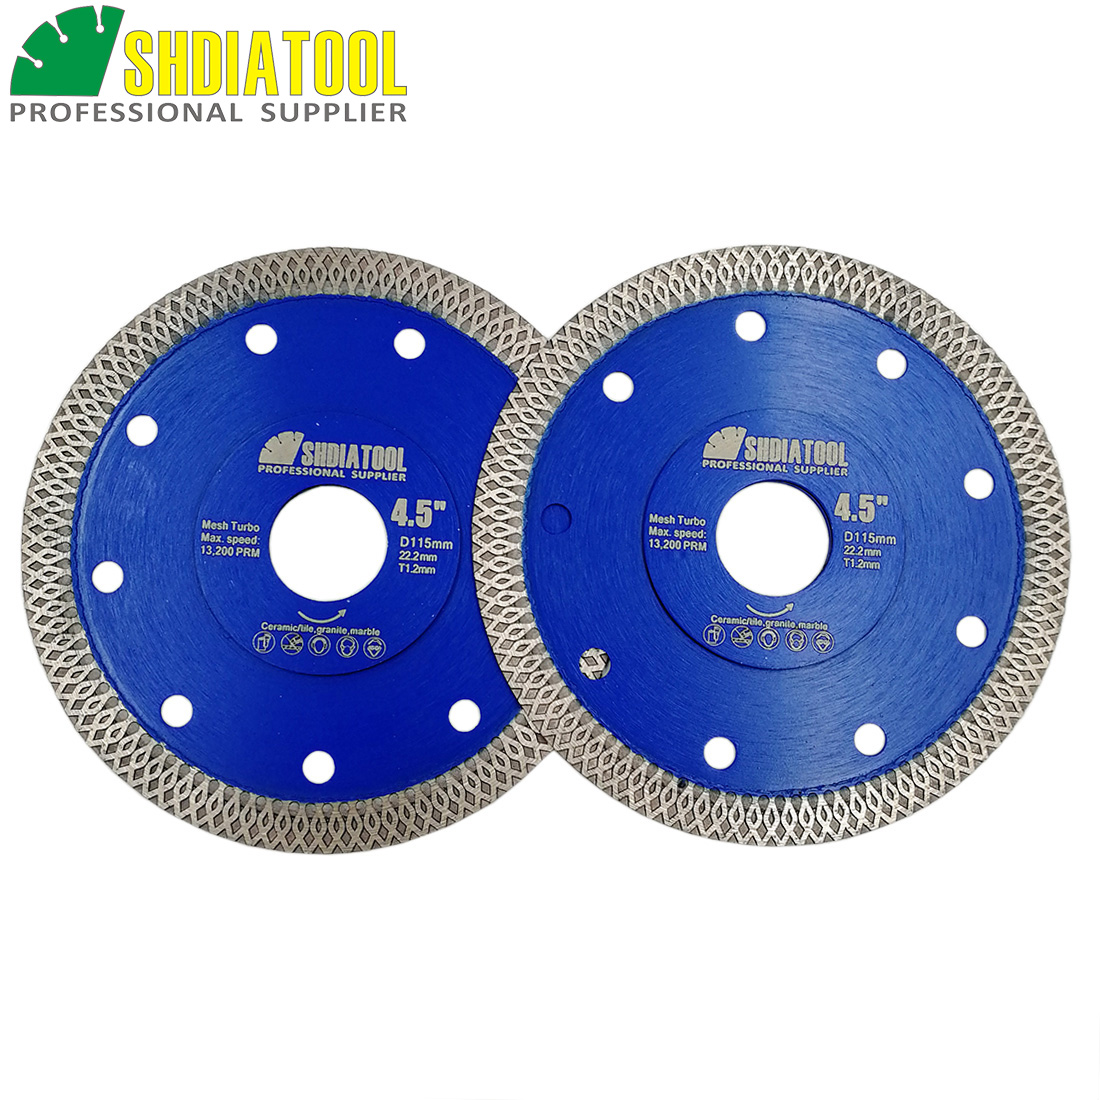 DIATOOL 2units Dia 4.5inch/115mm Hot pressed X Mesh Turbo Diamond Saw blade Diamond height 10MM Cutting Disc for Ceramic TileDIATOOL 2units Dia 4.5inch/115mm Hot pressed X Mesh Turbo Diamond Saw blade Diamond height 10MM Cutting Disc for Ceramic Tile